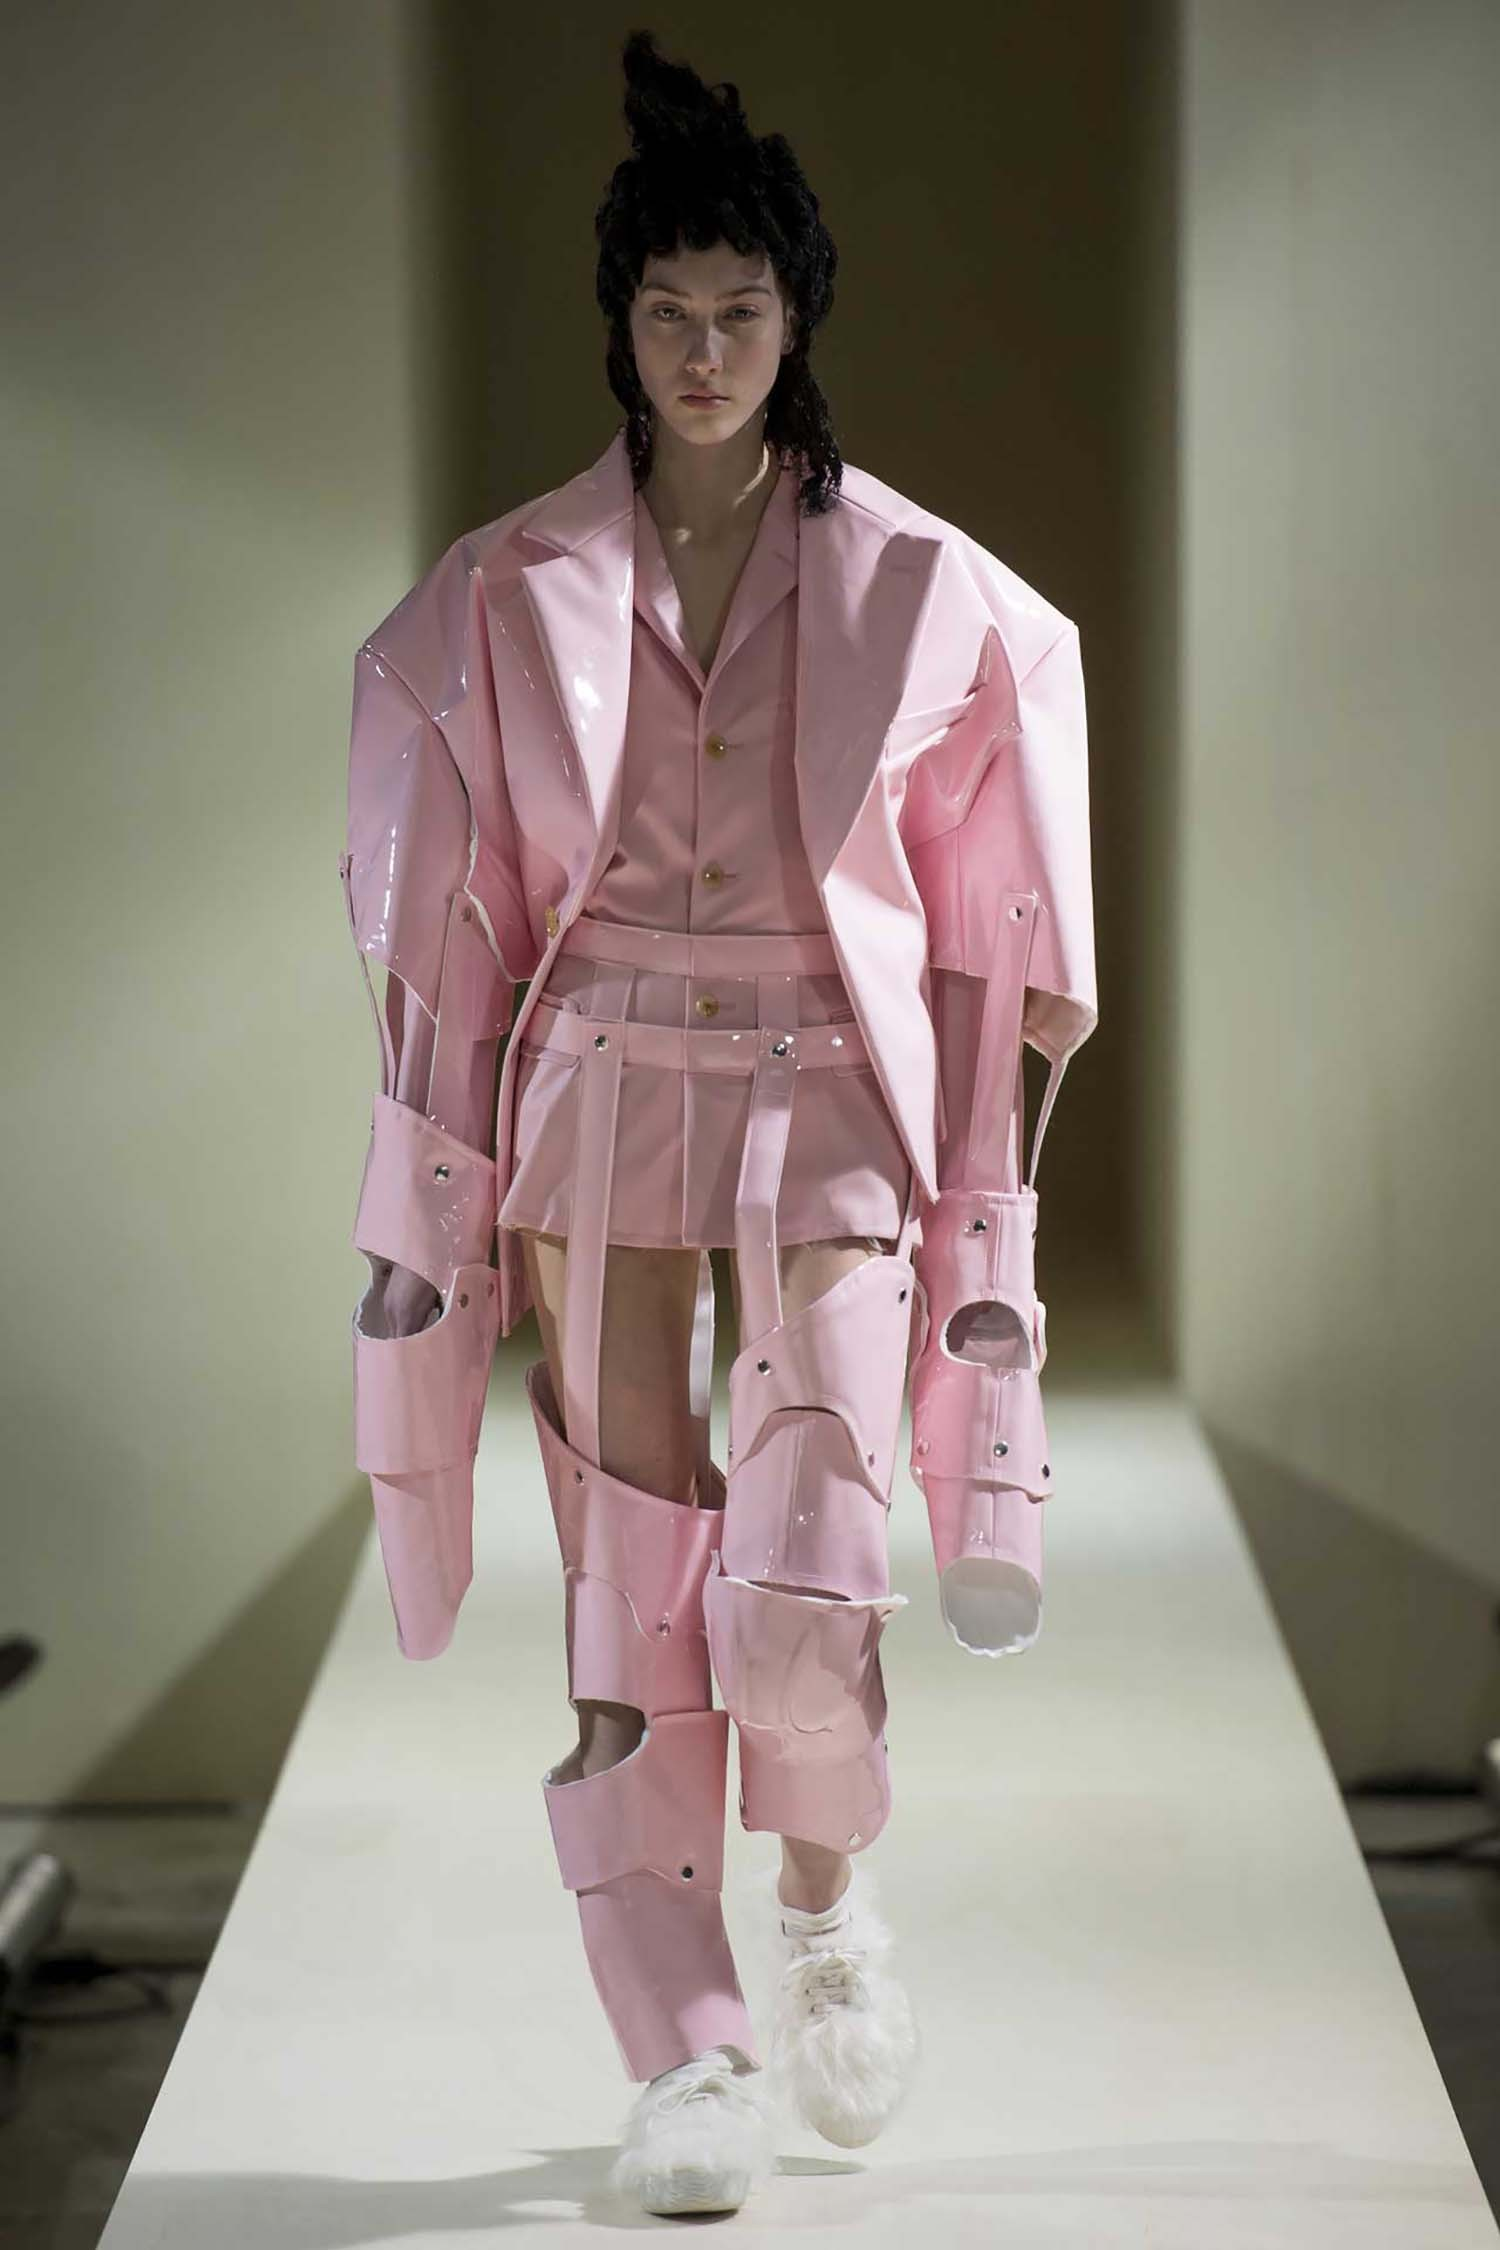 """Rei Kawakubo for Comme des Garçons: Two-piece ensemble in synthetic leather from the """"18th-Century Punk"""" collection. A retrospective of Rei Kawakubo's work, """"Art of the In-Between"""", is currently on show at the Costume Institute of the Metropolitan Museum of Art (until 4th September 2017 ) (Foto: COPYRIGHT AND COURTESY OF COMME DES GARÇONS)"""